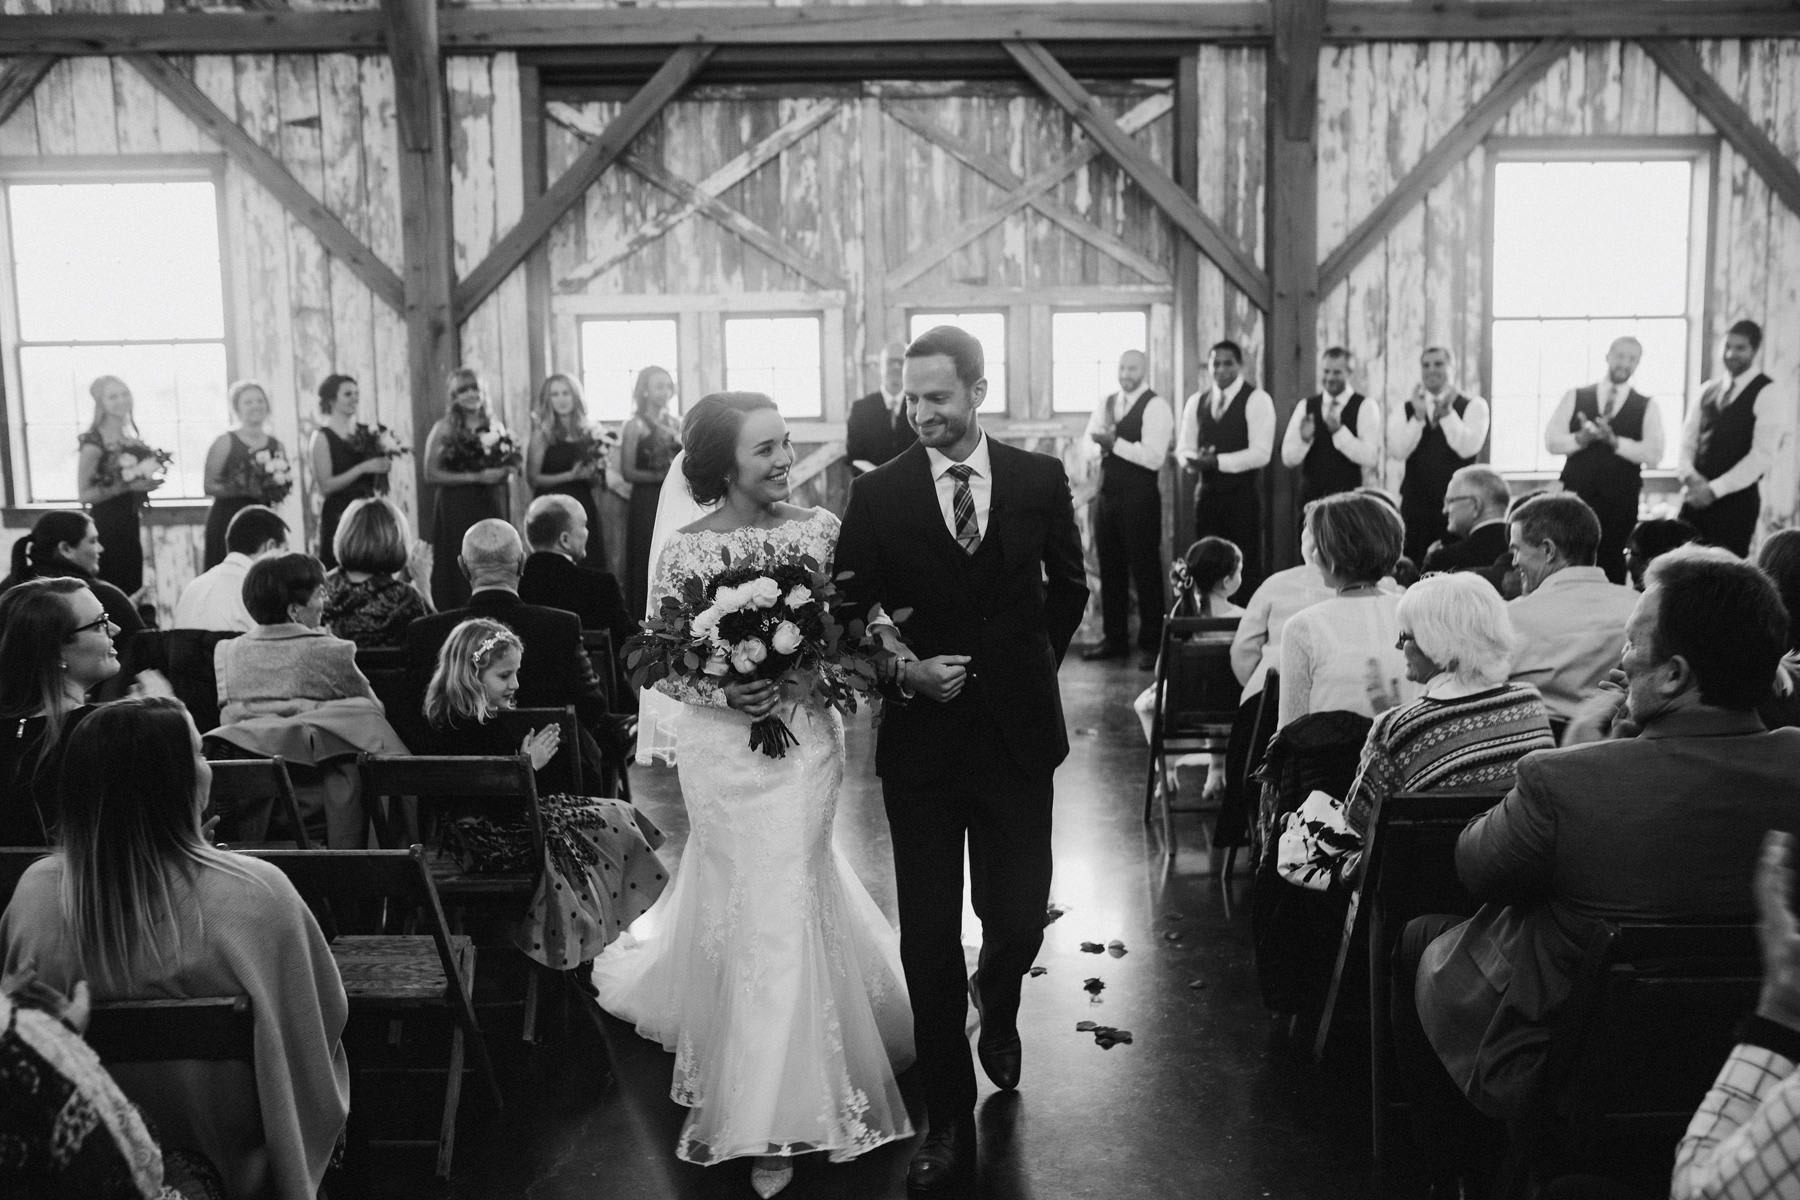 168_Weston Red Barn Farm Winter Wedding Kansas City, Missouri_Kindling Wedding Photography.JPG